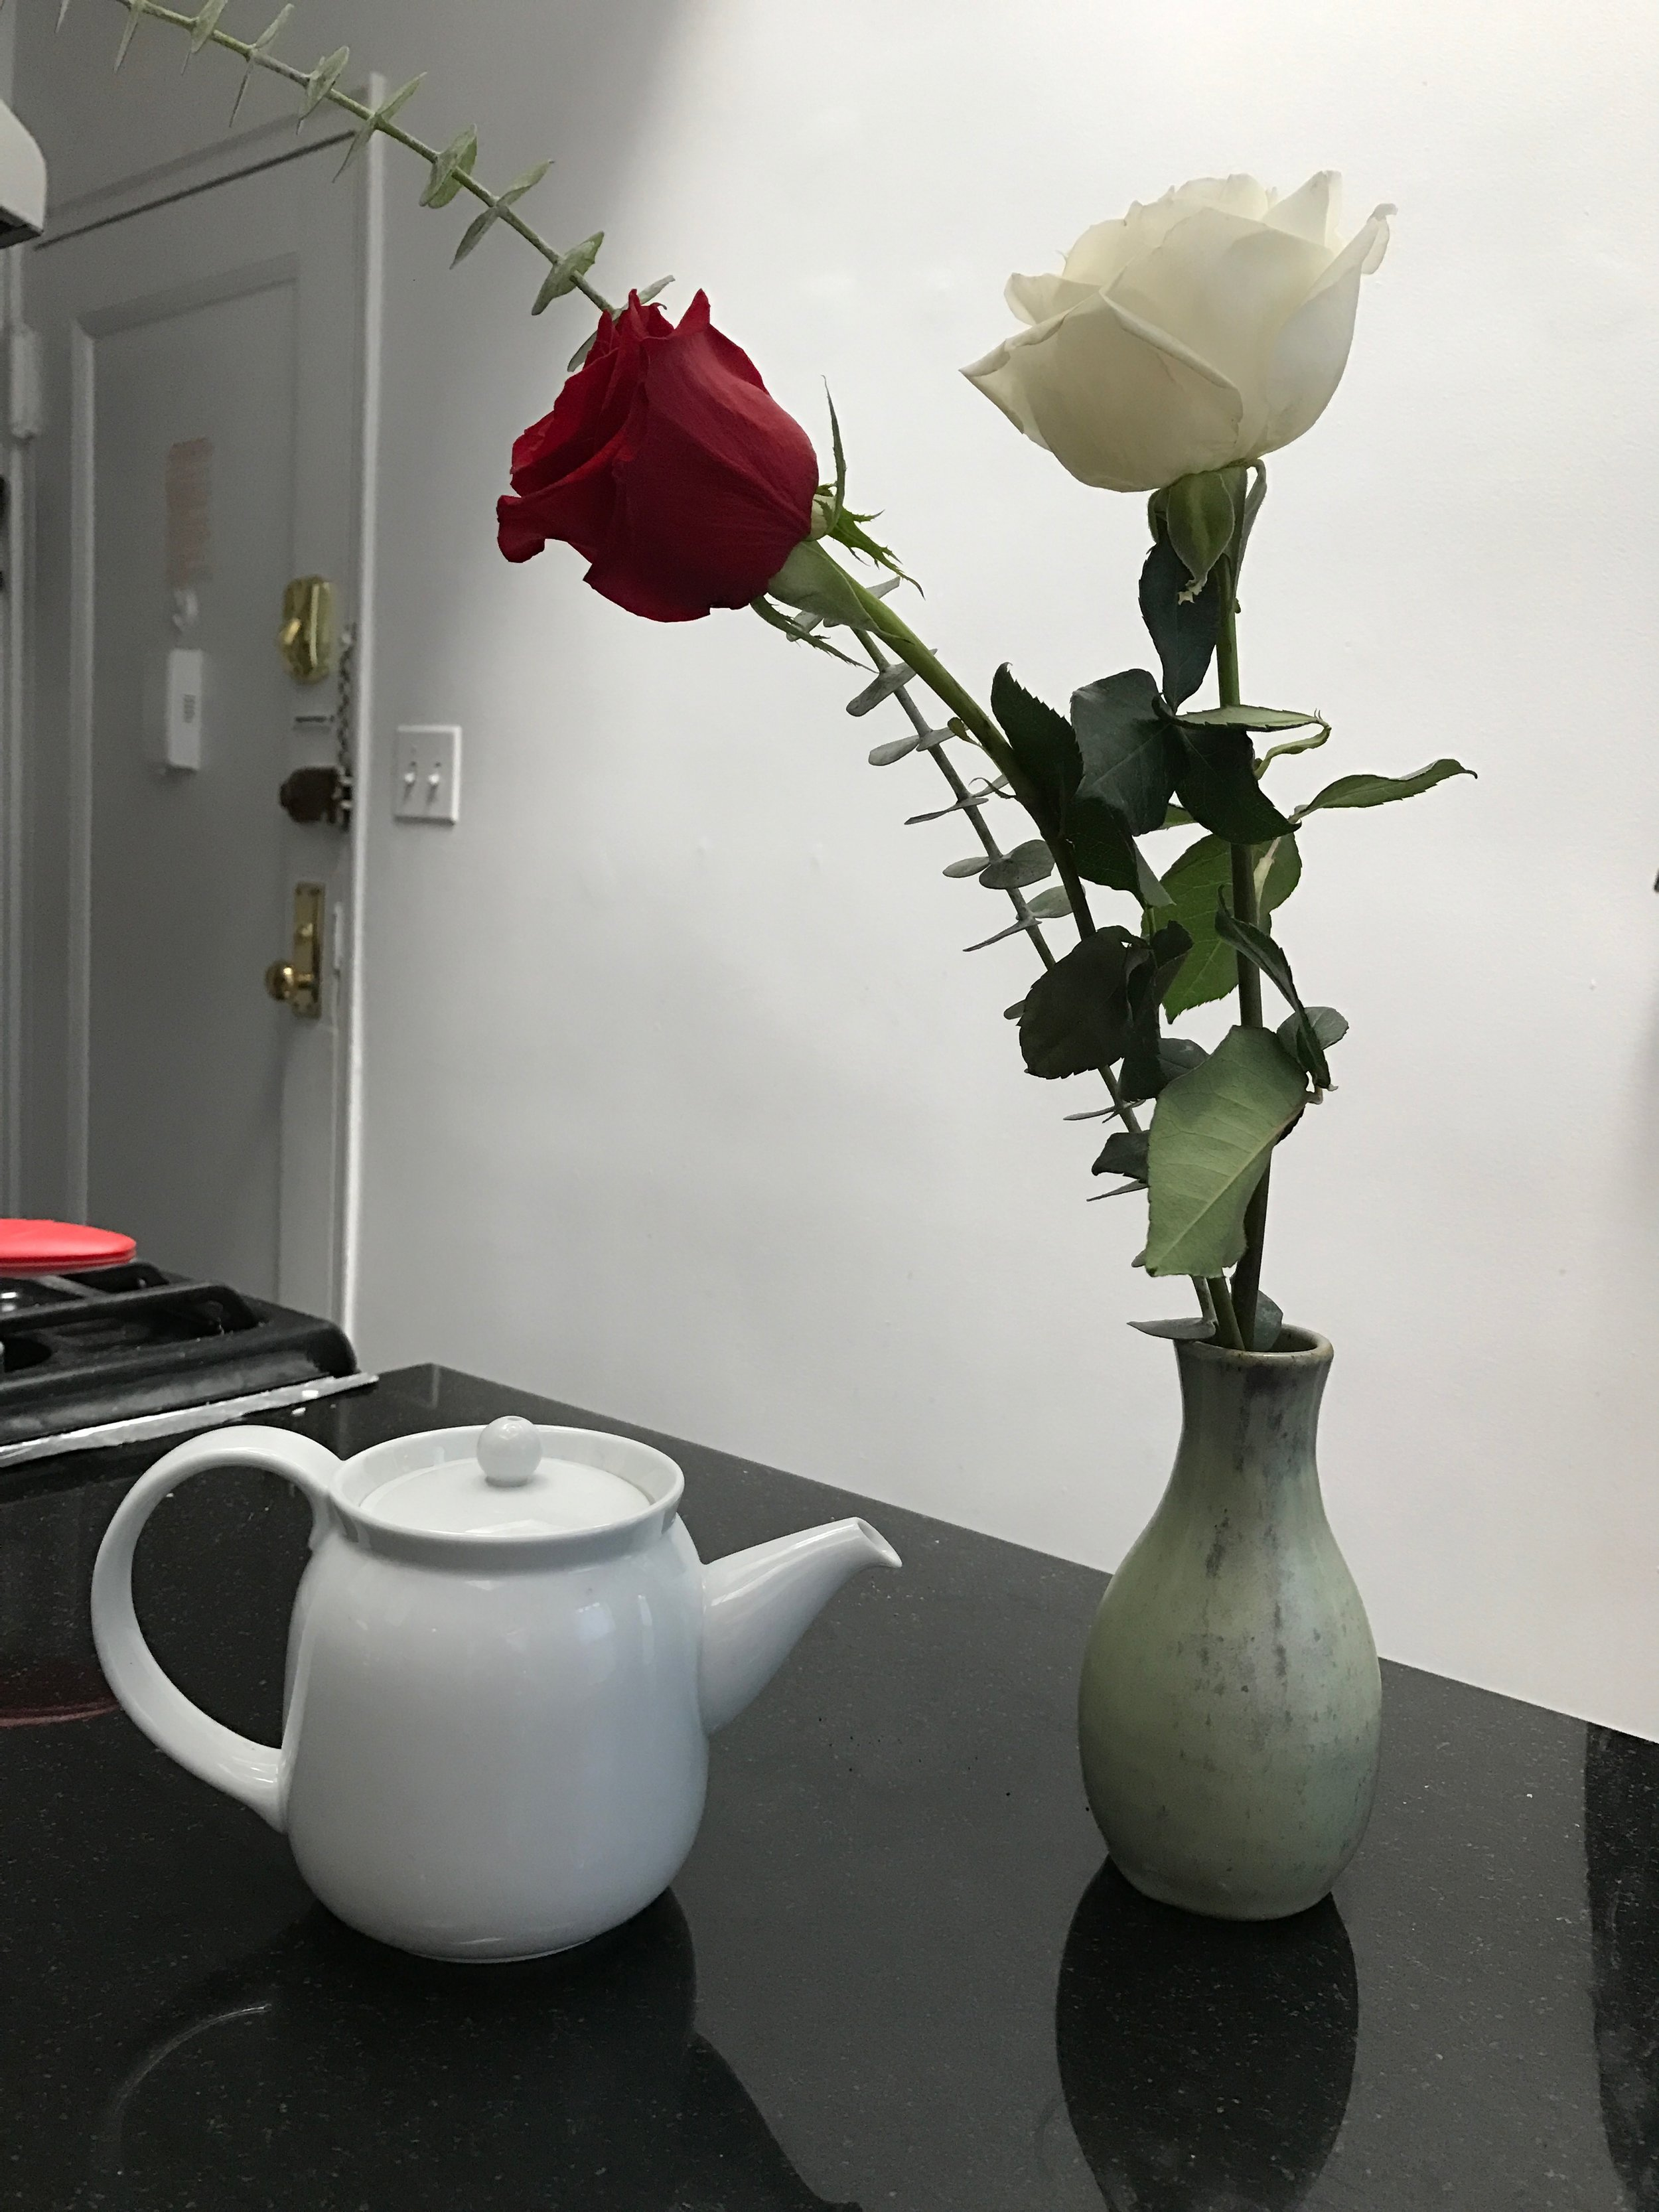 I felt like the flowers needed to be next to a tea pot. They look nice though, right? Well they had better because I'm not really feeling up to taking a new picture